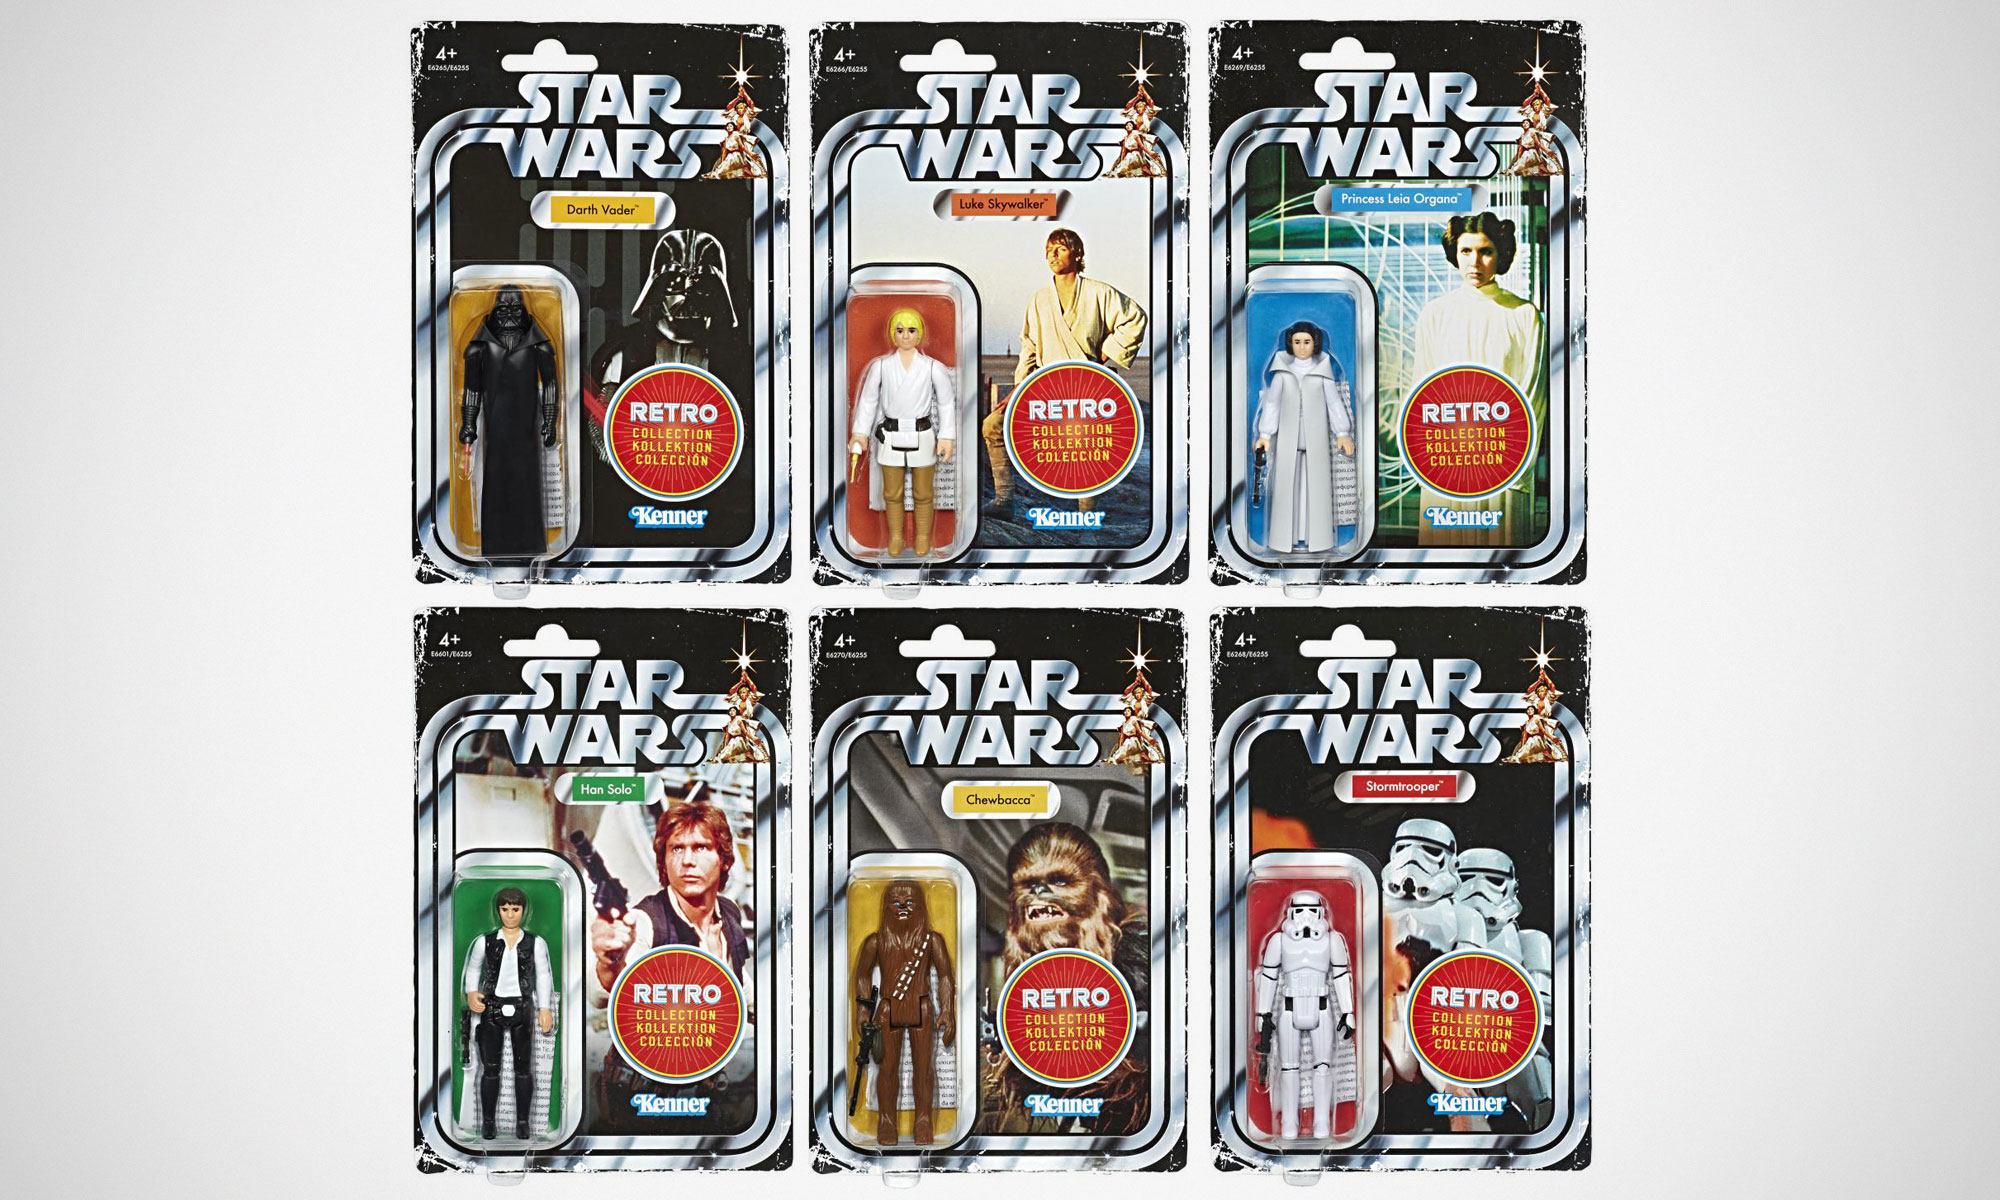 Star Wars Rétro Collection WAVE 1 set Vader han luke leia Stormtrooper Chewbacca